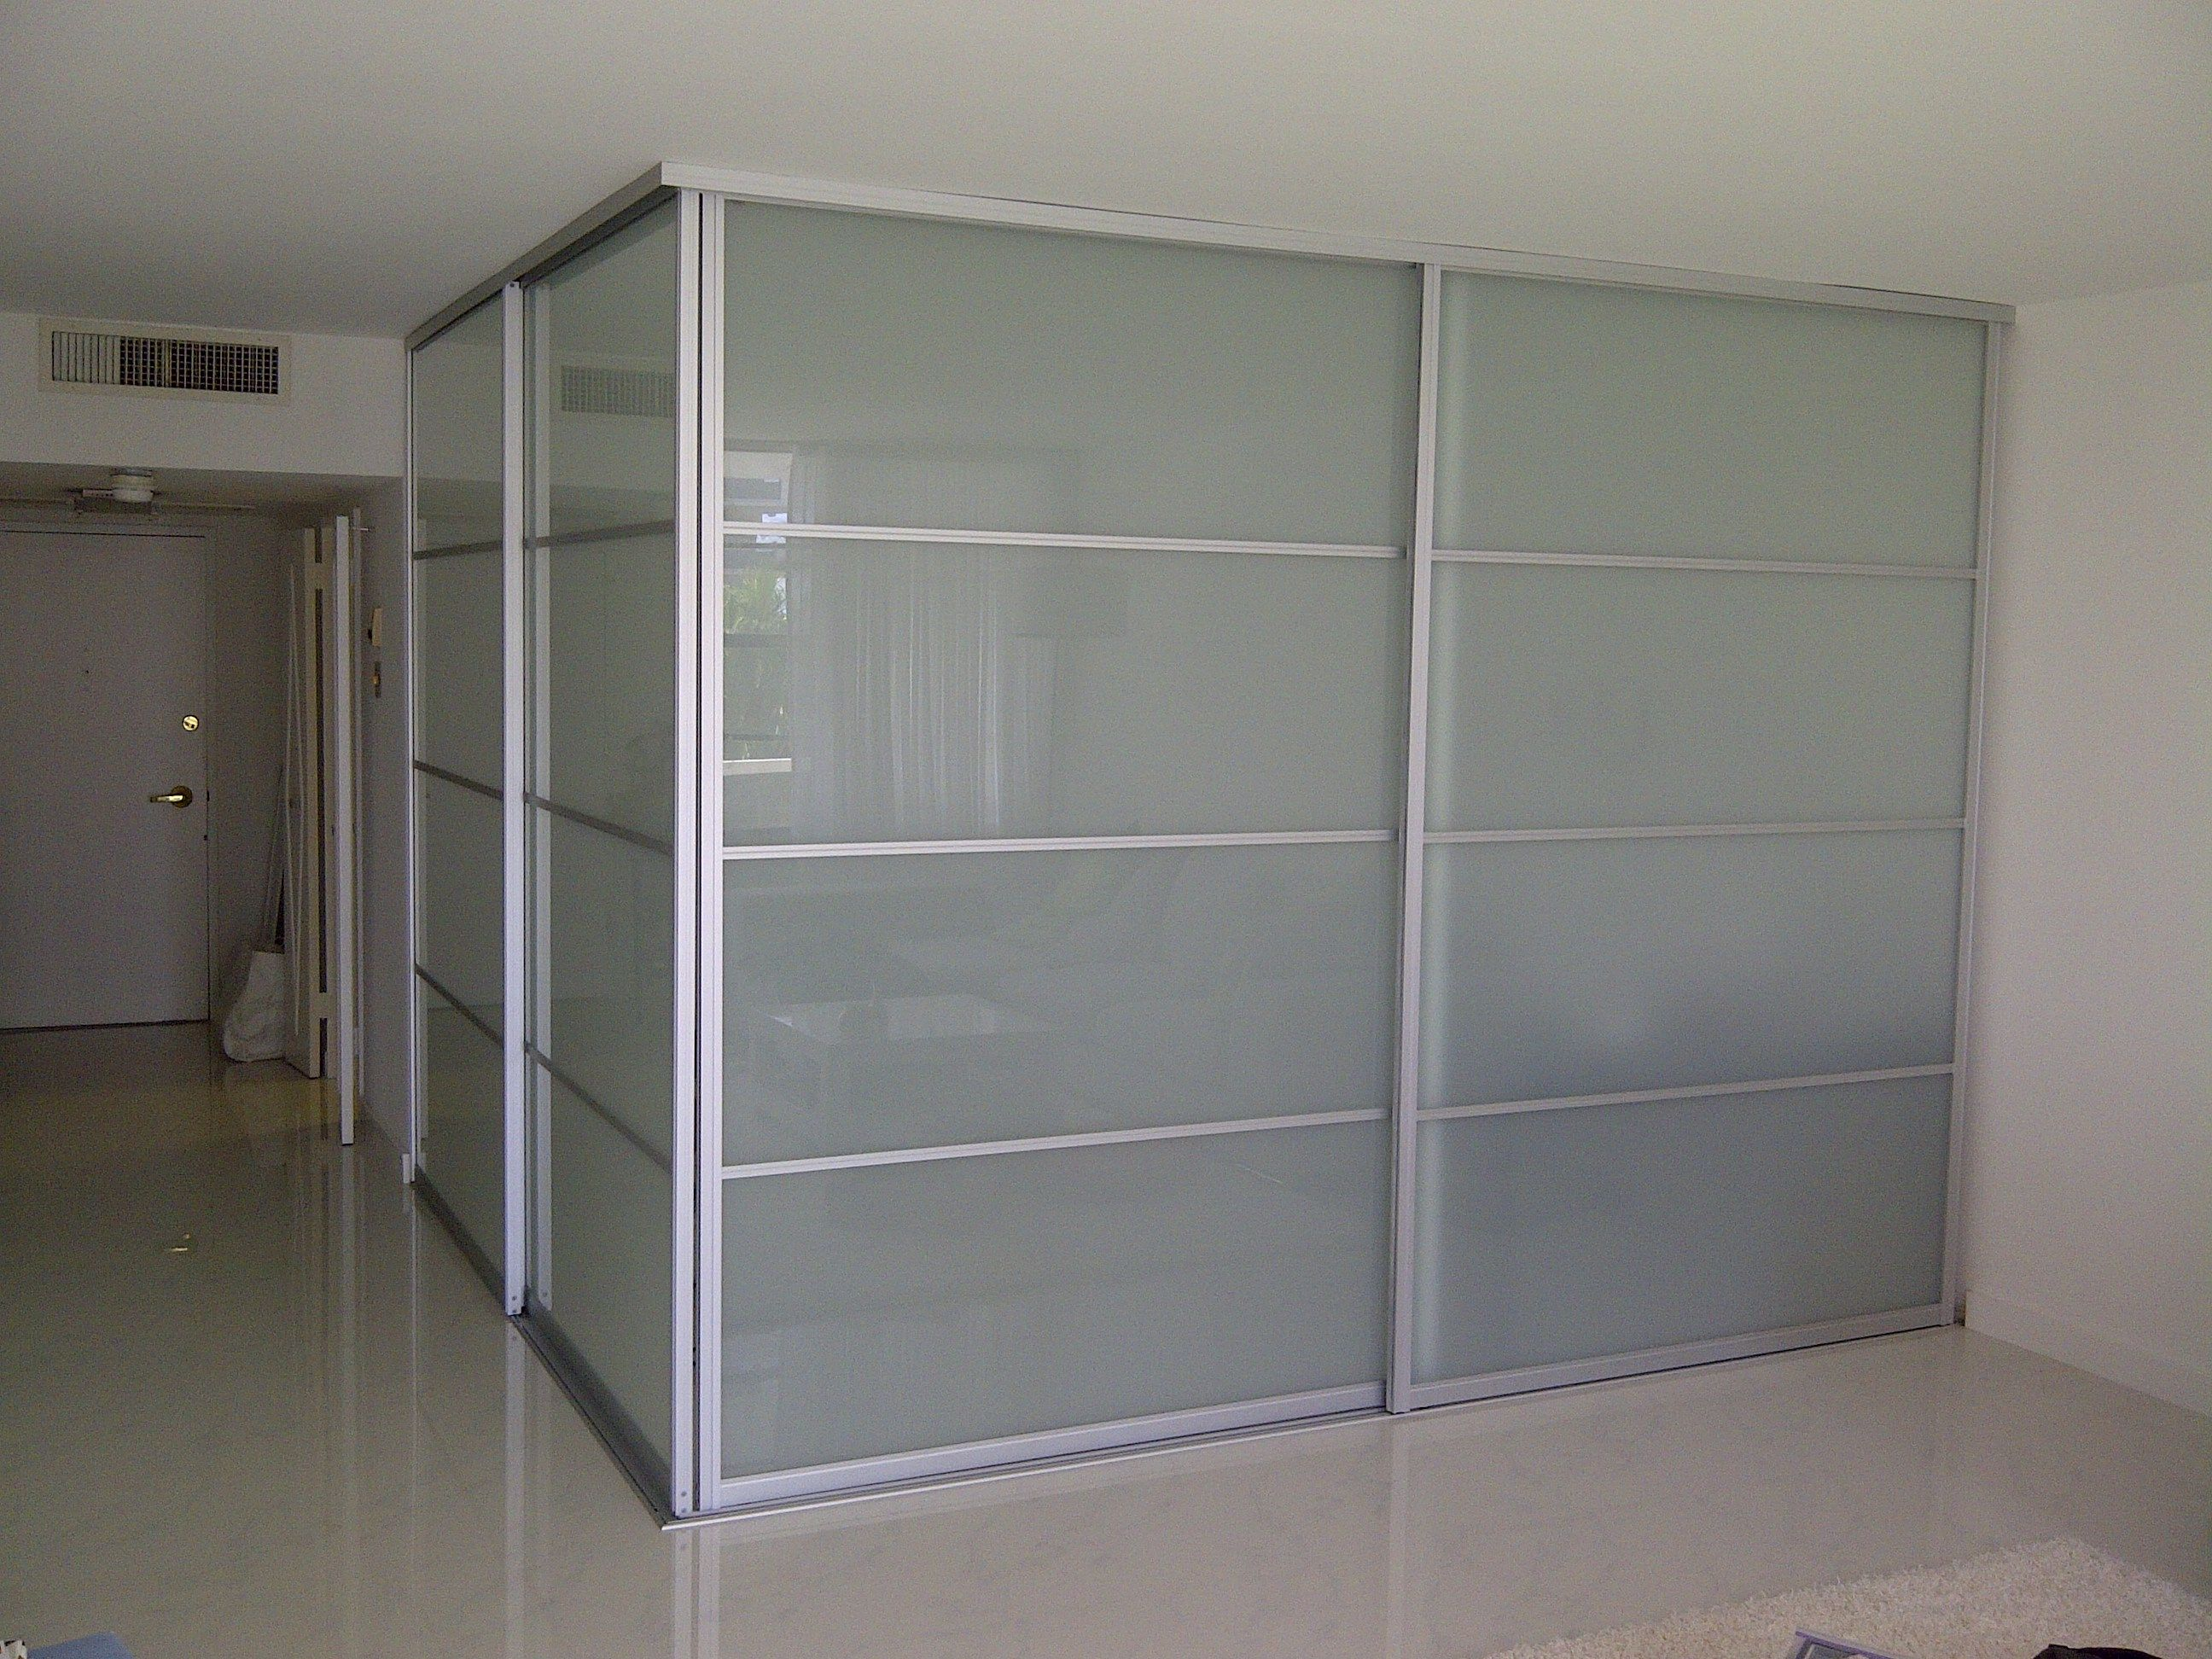 Interior sliding glass doors room dividers - Frosted Glass Sliding Room Divider With Alumunium Frames Connected By White Wall And White Floor